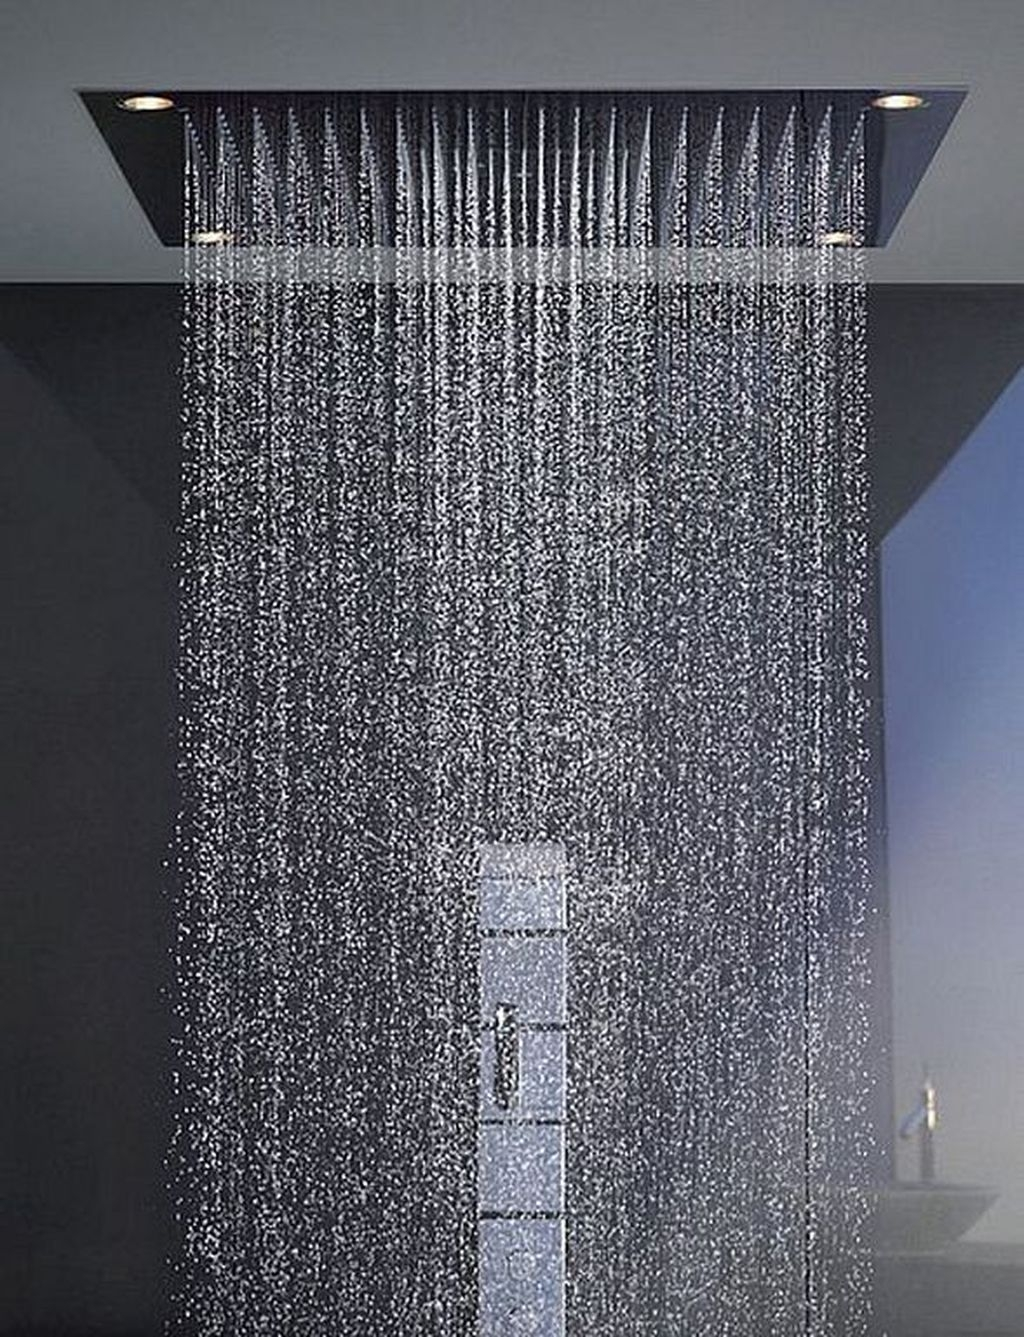 Stunning Rainfall Shower Ideas29